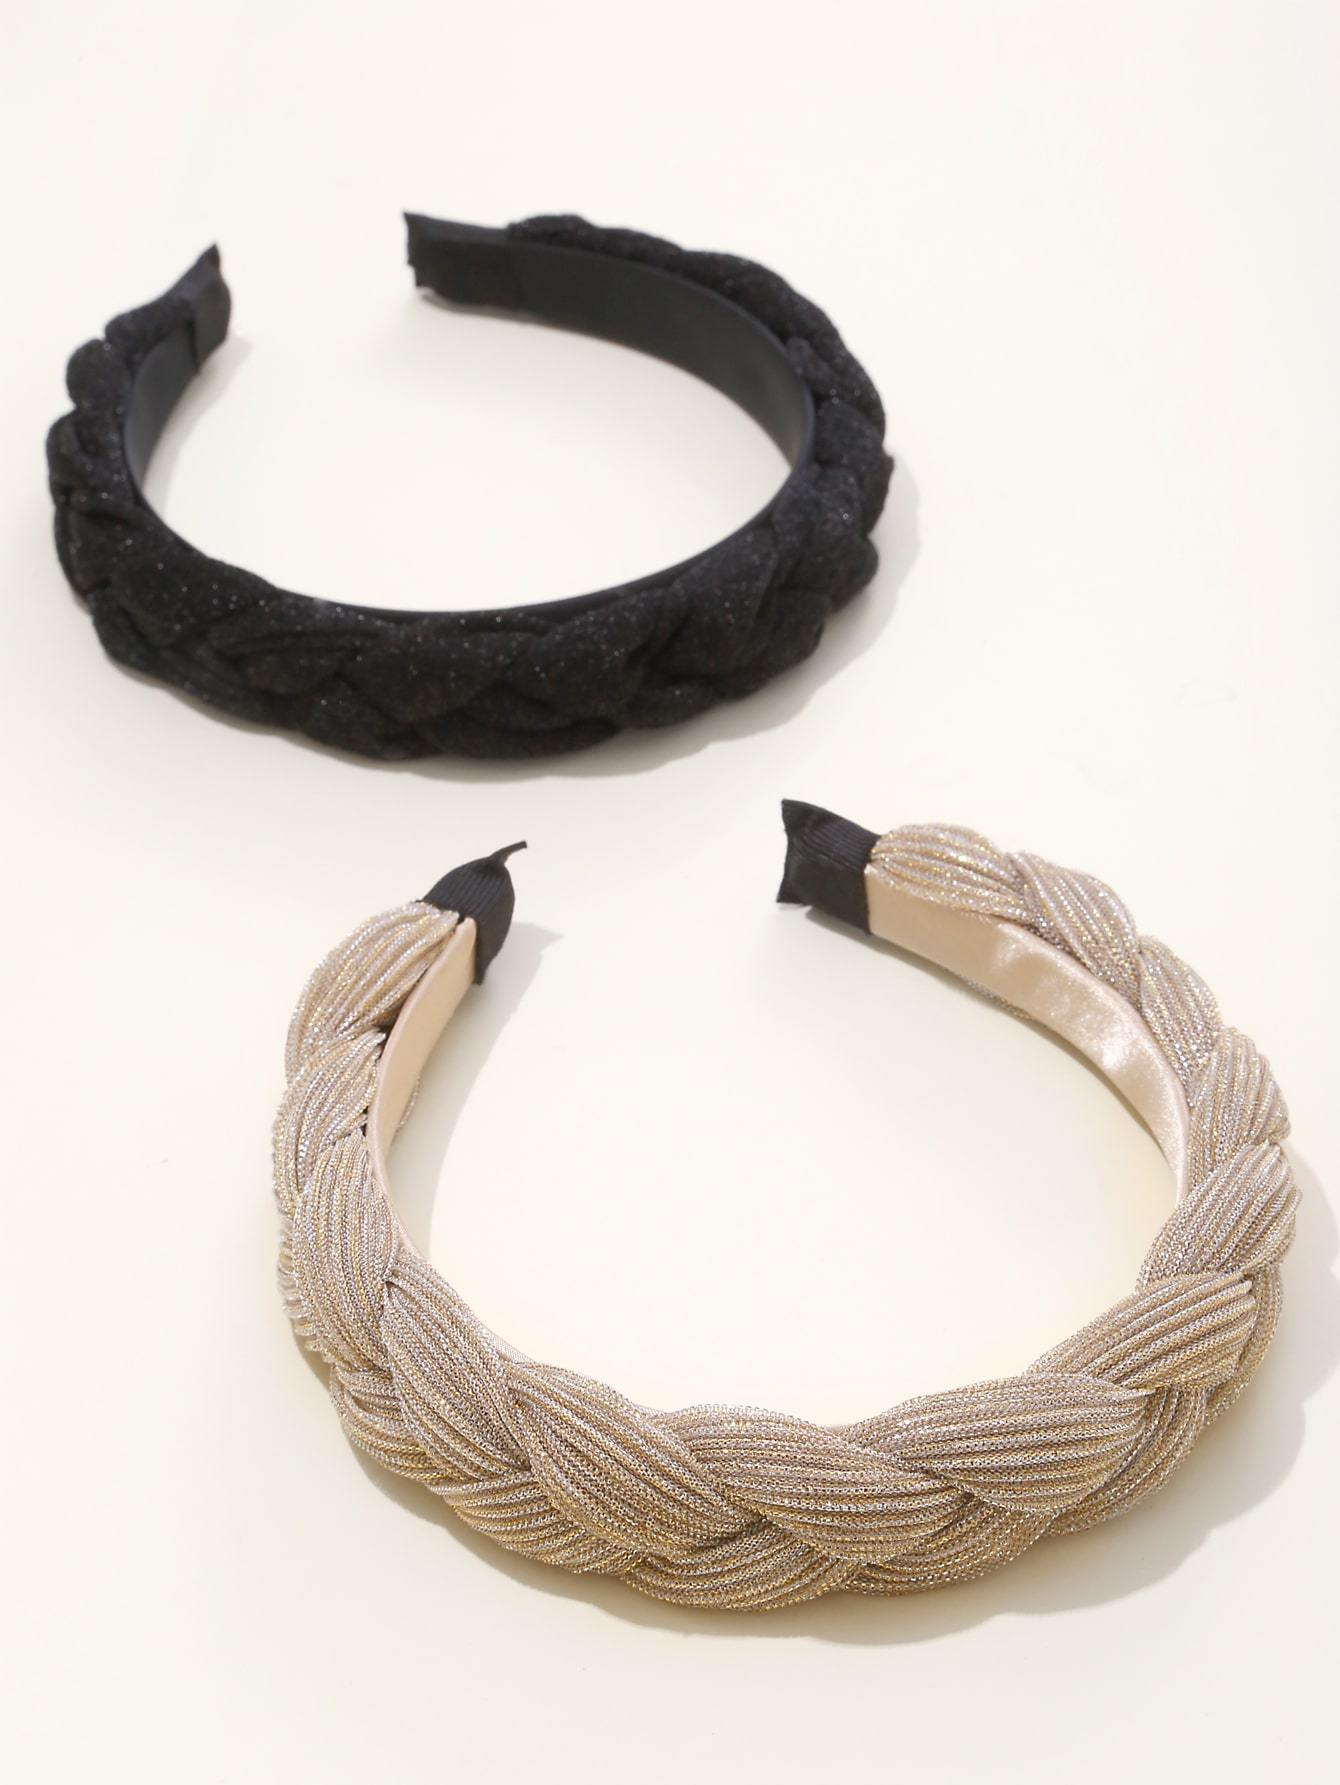 2pcs Braided Hair Hoop Shop n Save Pakistan